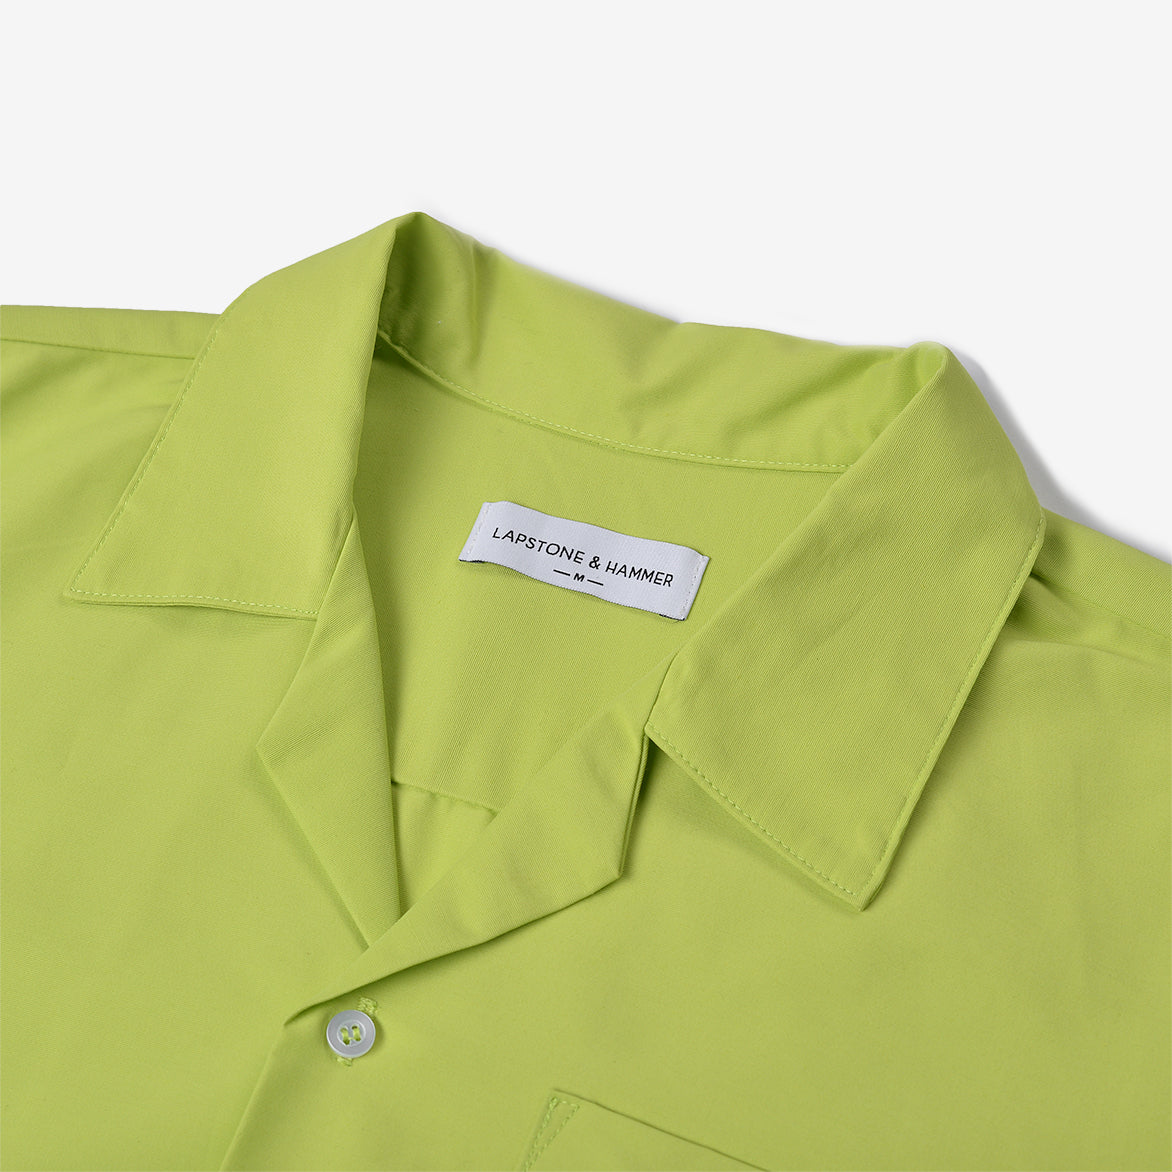 JAPANESE NYLON CAMP SHIRT - NEON GREEN